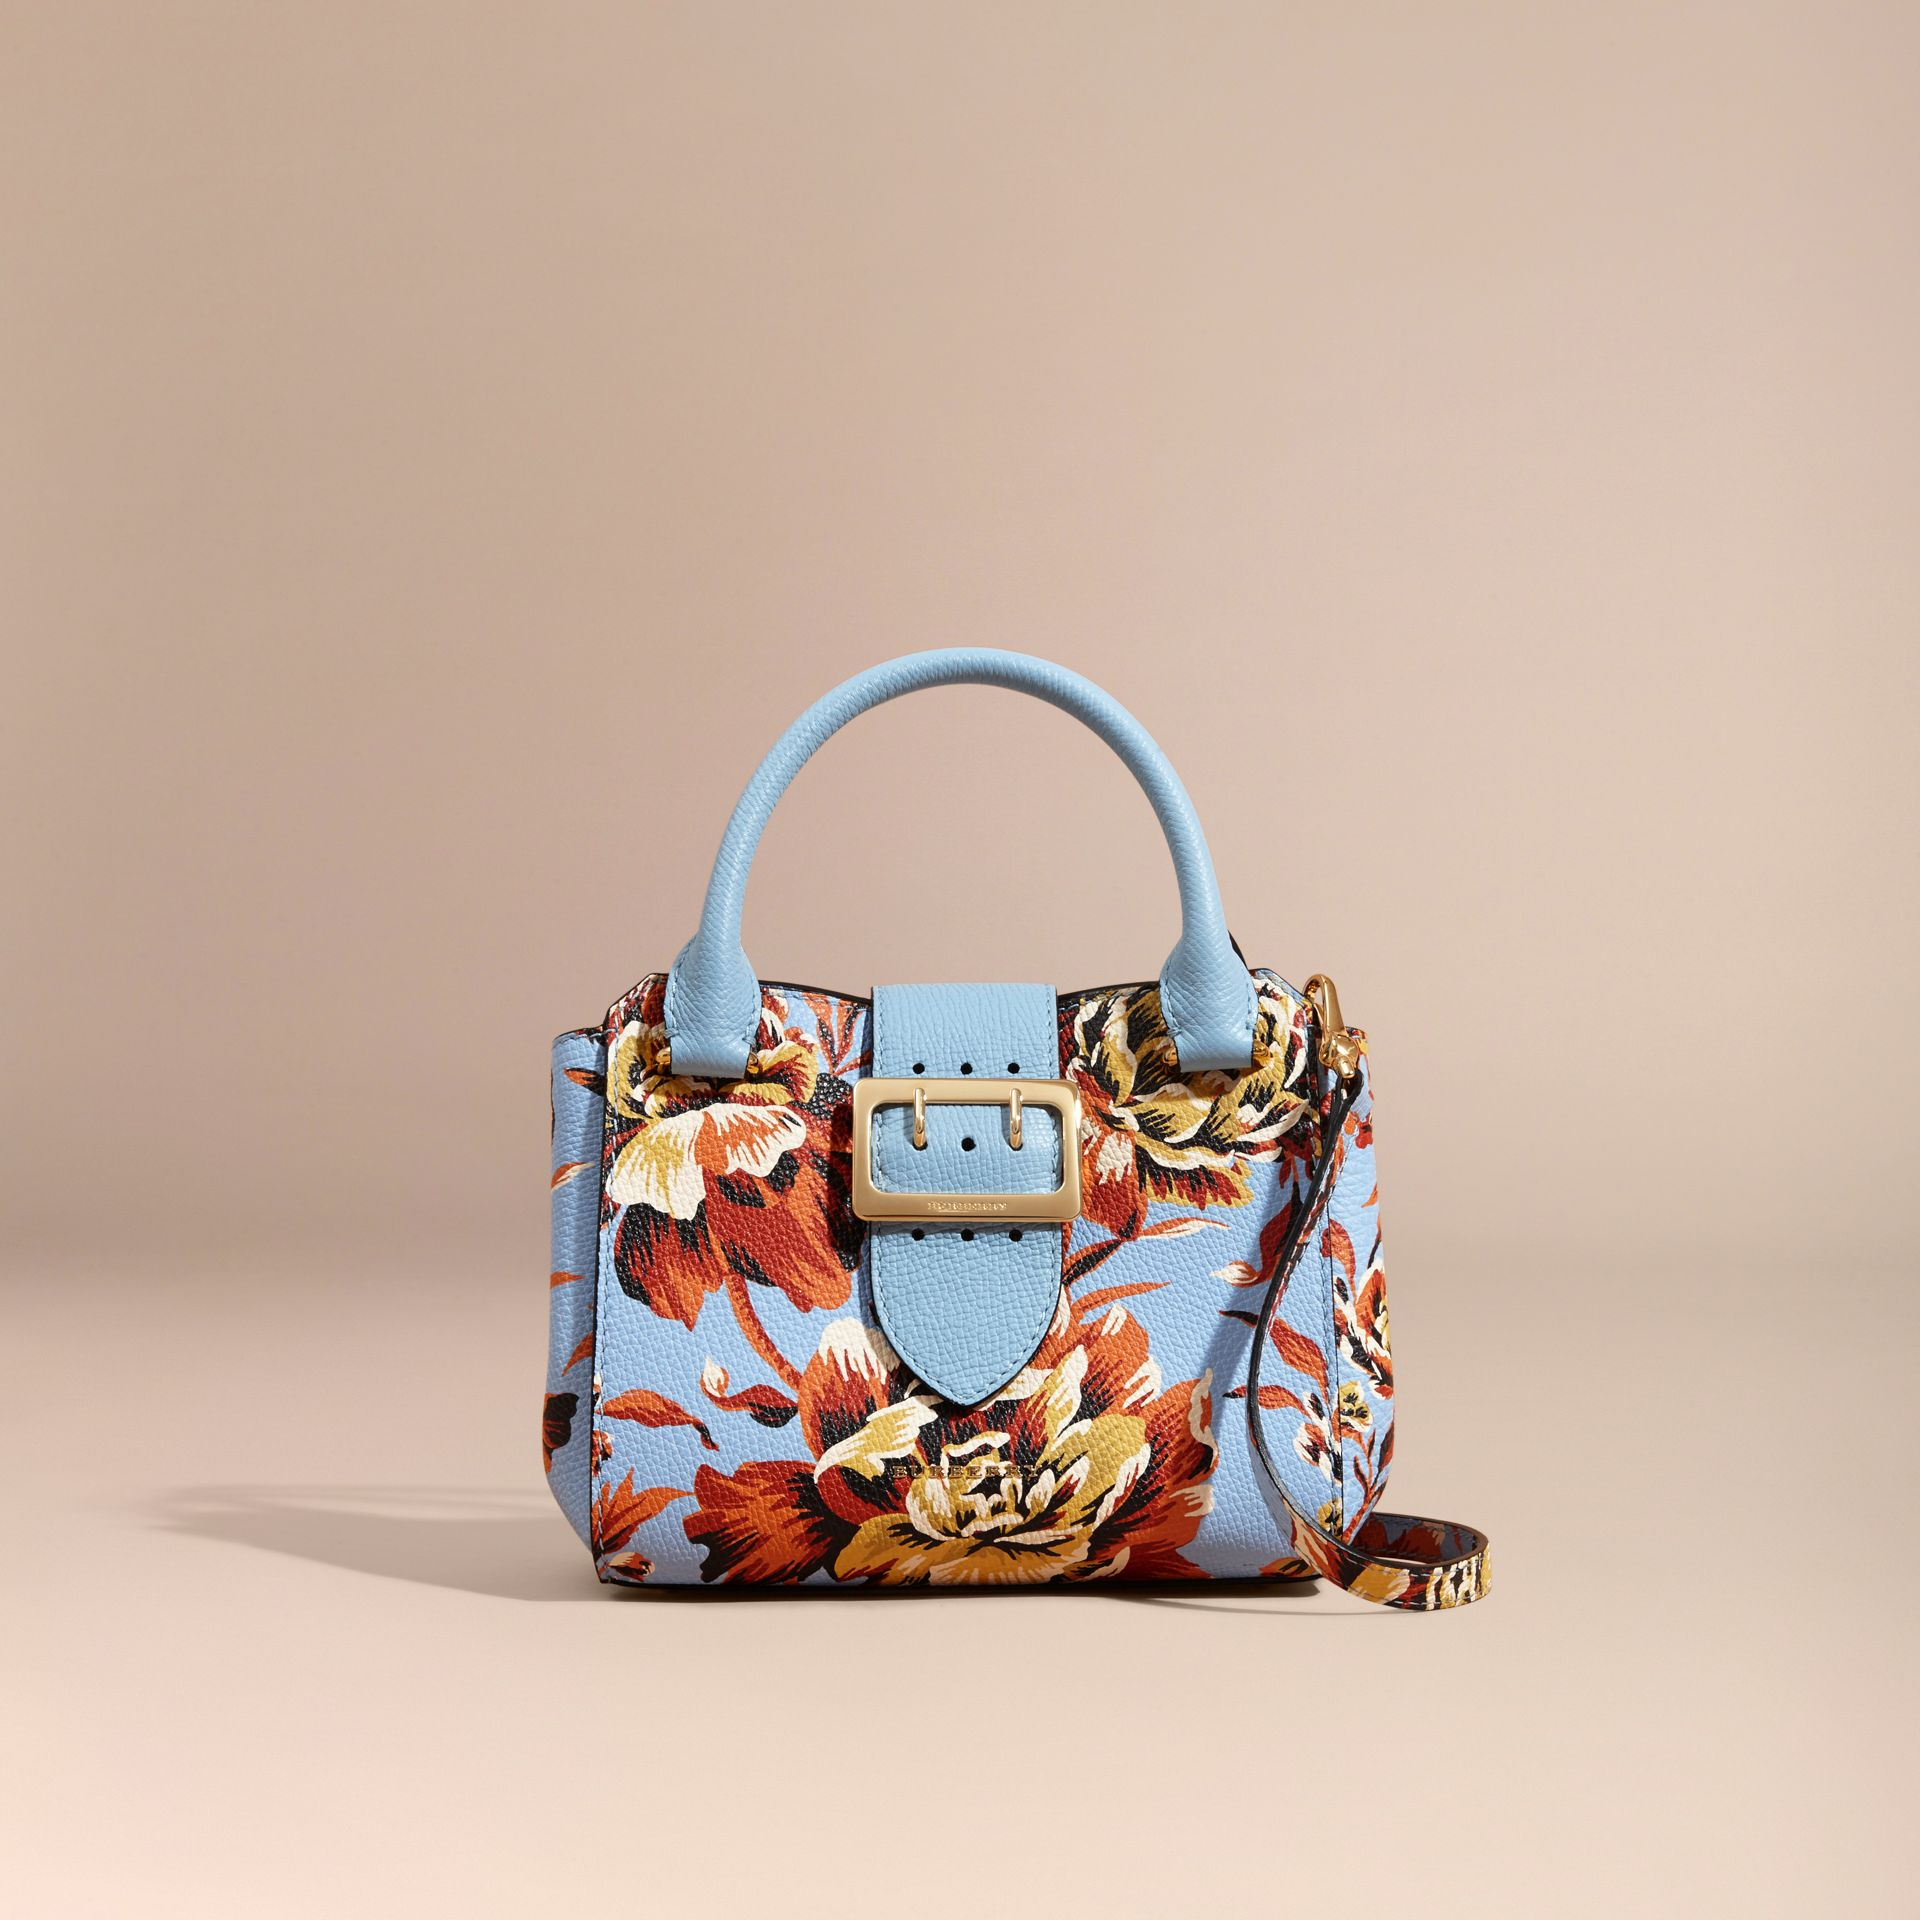 Pale blue/vibrant orange The Small Buckle Tote in Peony Rose Print Leather Pale Blue/vibrant Orange - gallery image 9